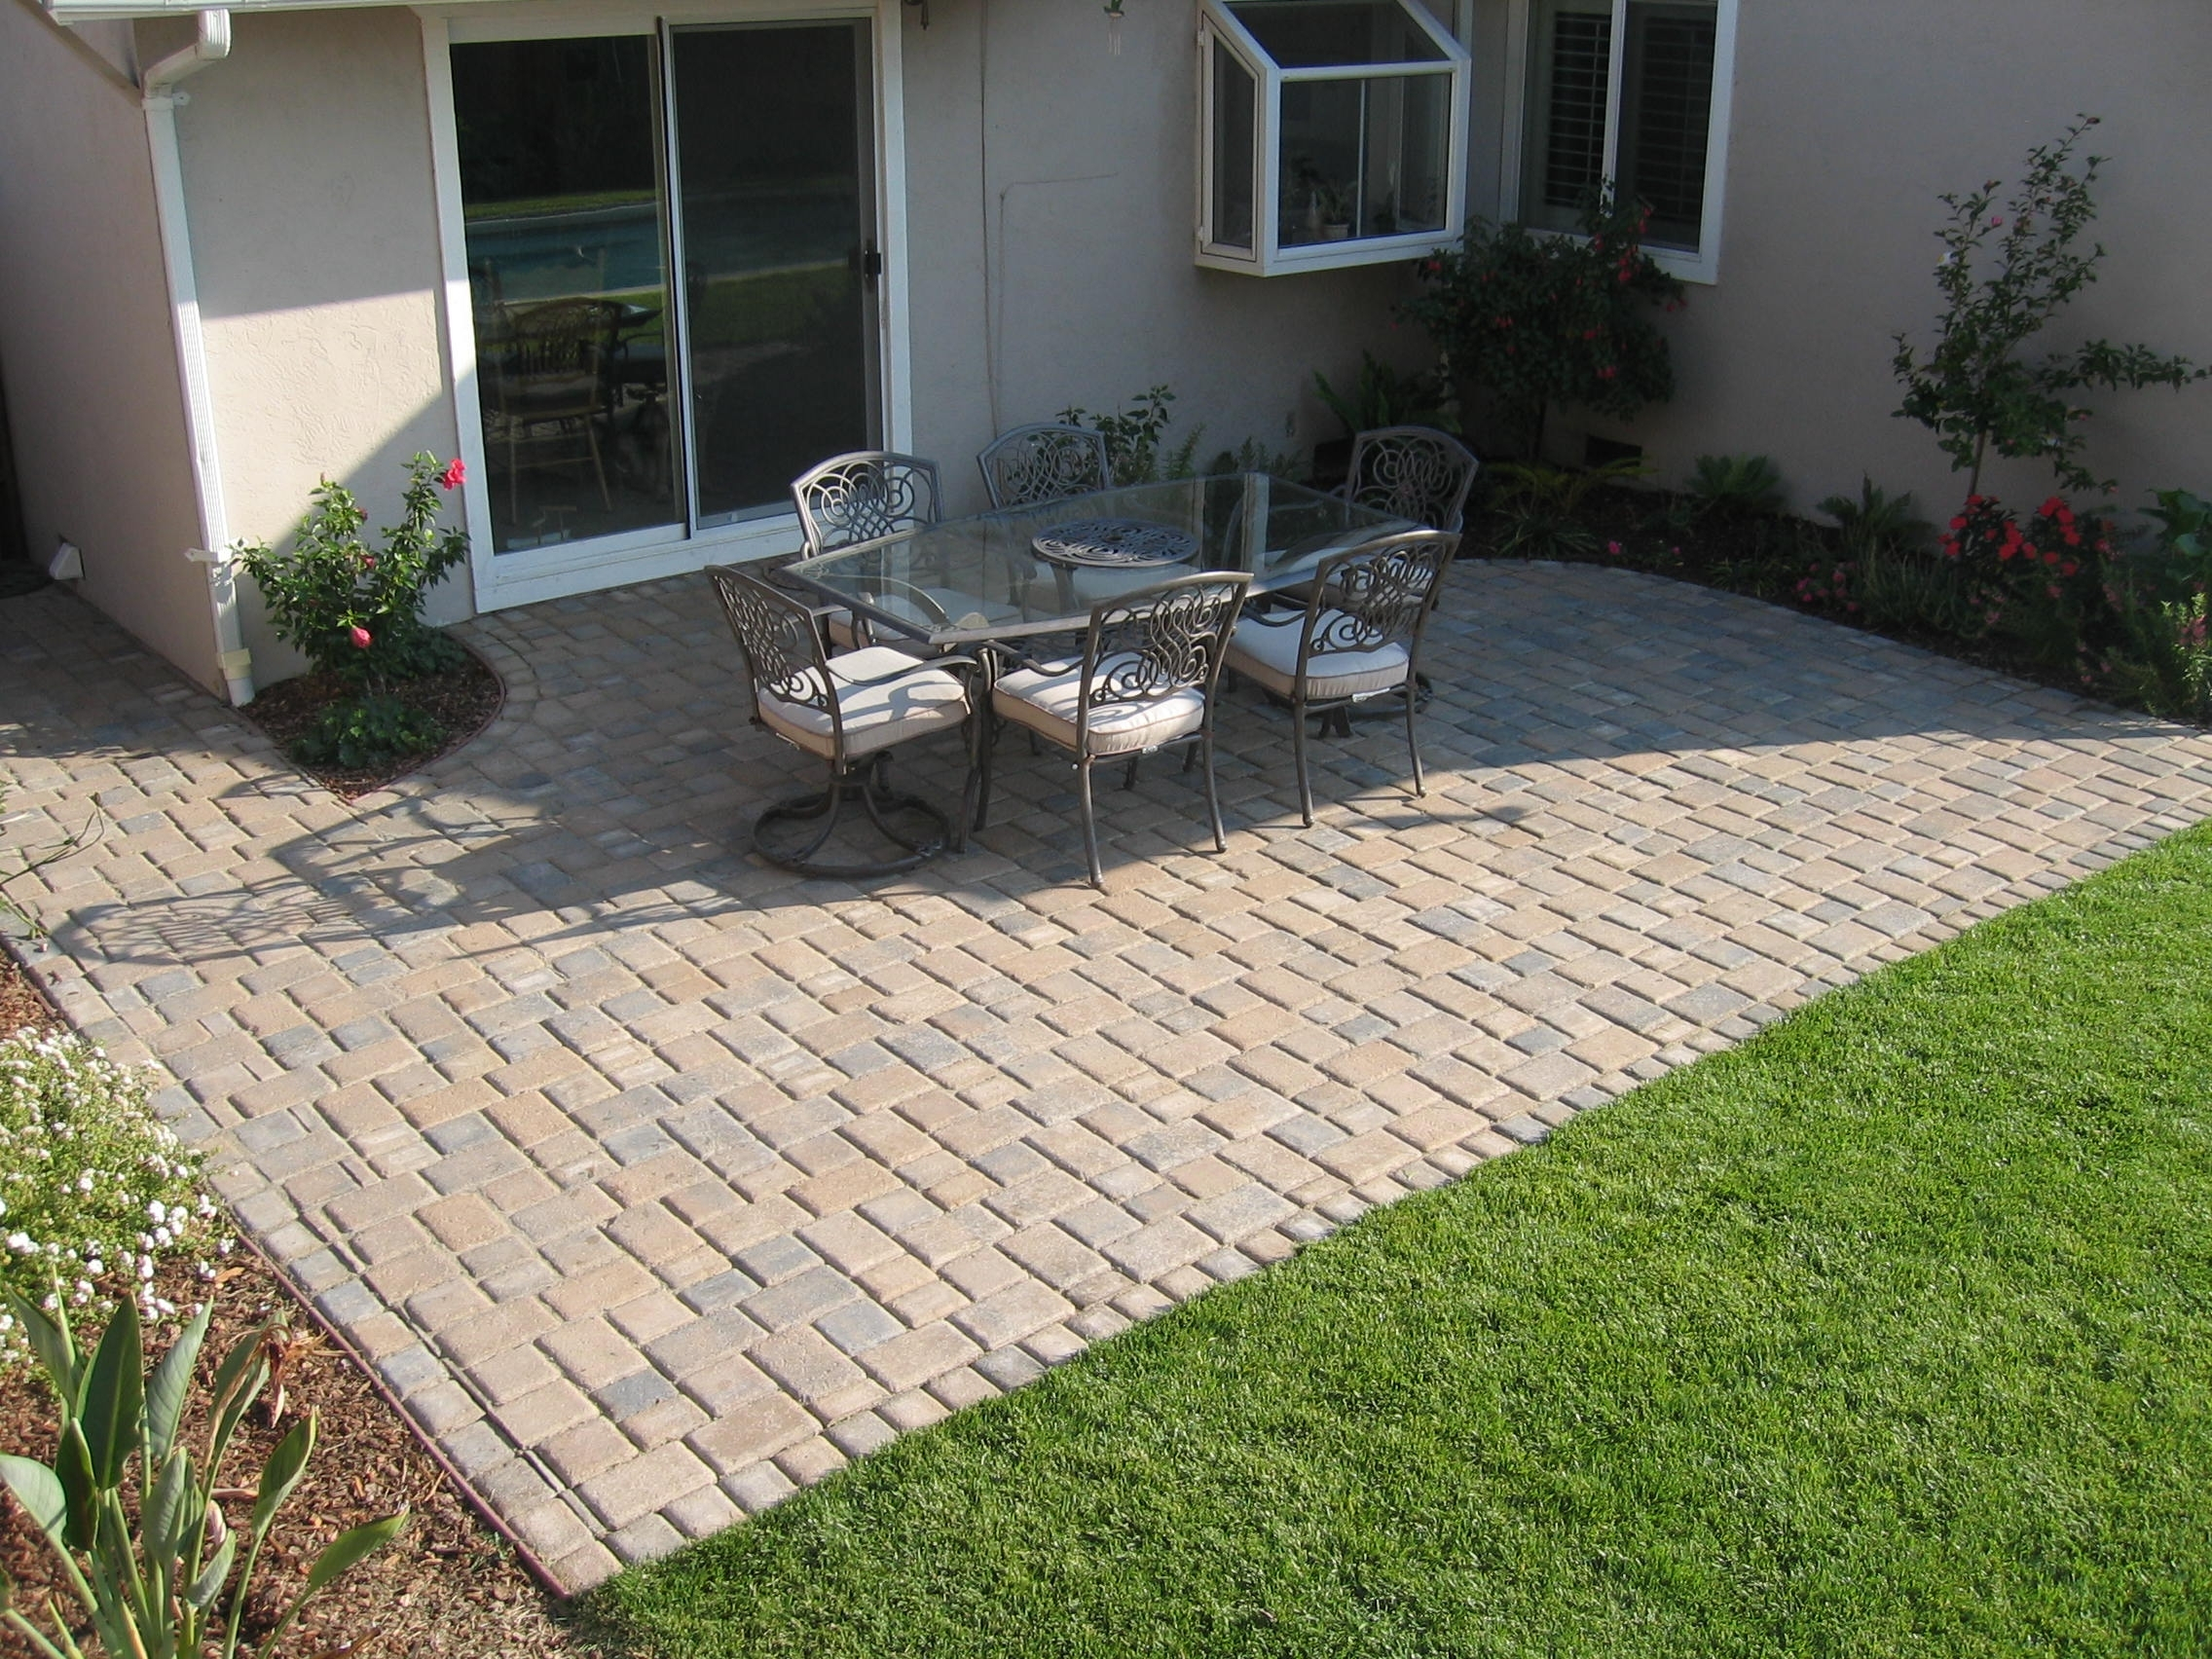 Simple Patio Designs With Pavers • Patio Ideas on Basic Patio Ideas id=35477